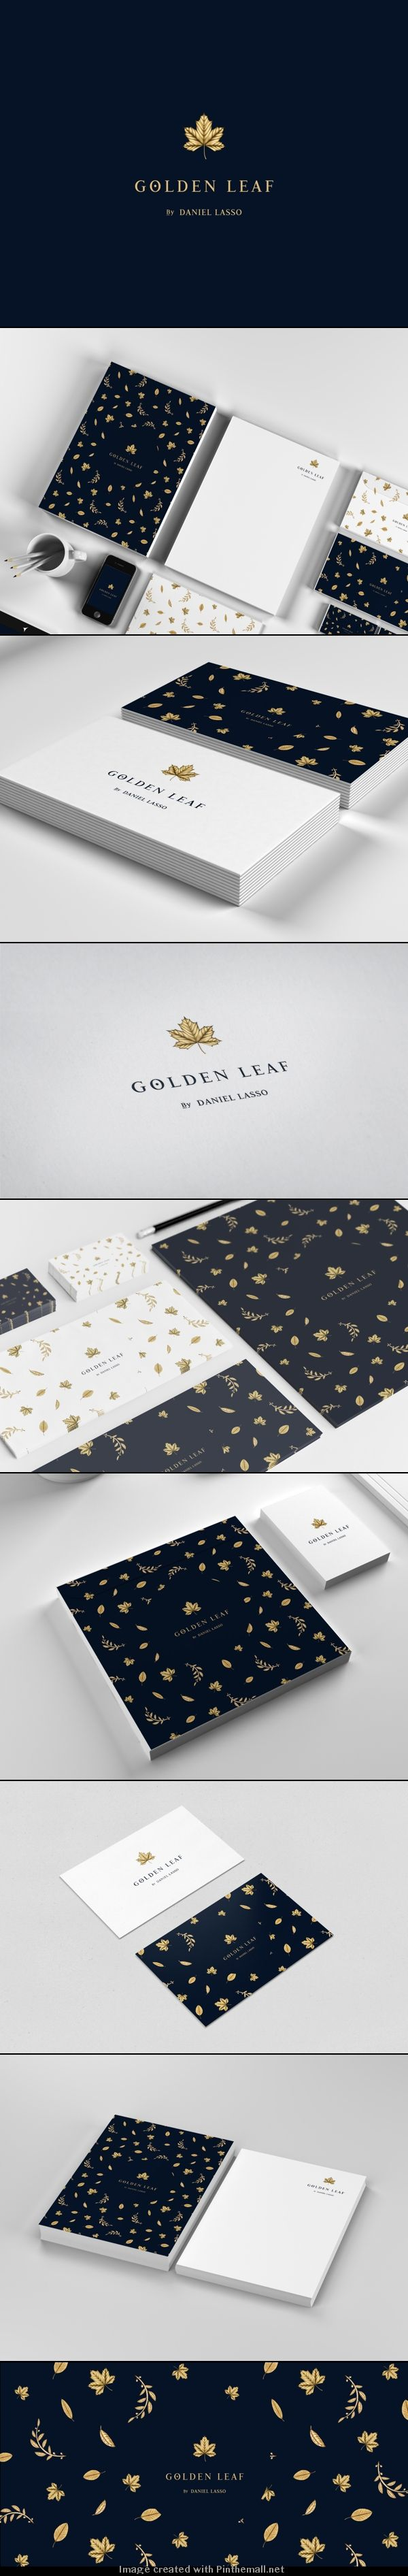 Golden Leaf #business-cards #branding #creative  pinned by www.website-designers.co.nz